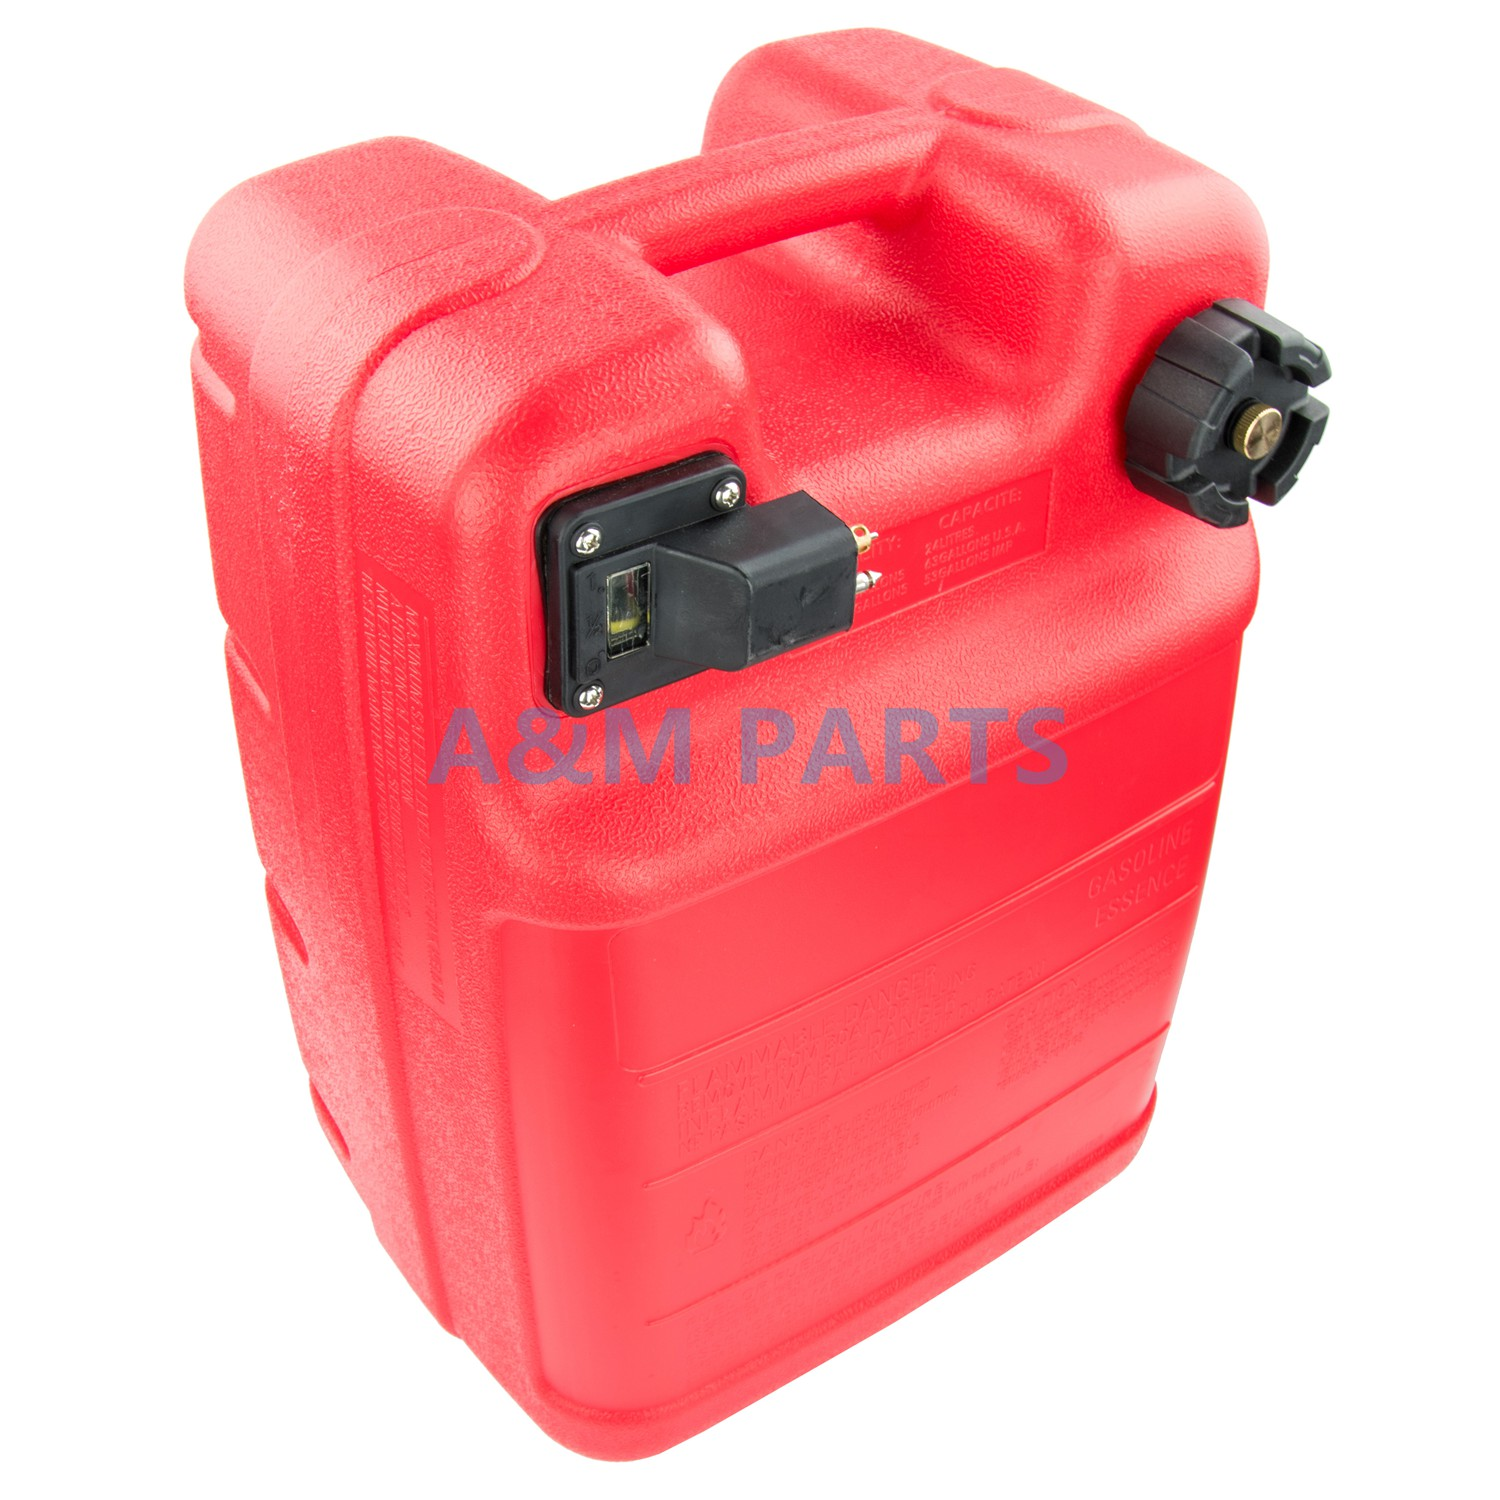 Portable Boat Engine Fuel Tank 24L Marine Outboard Fuel Tank With Connector